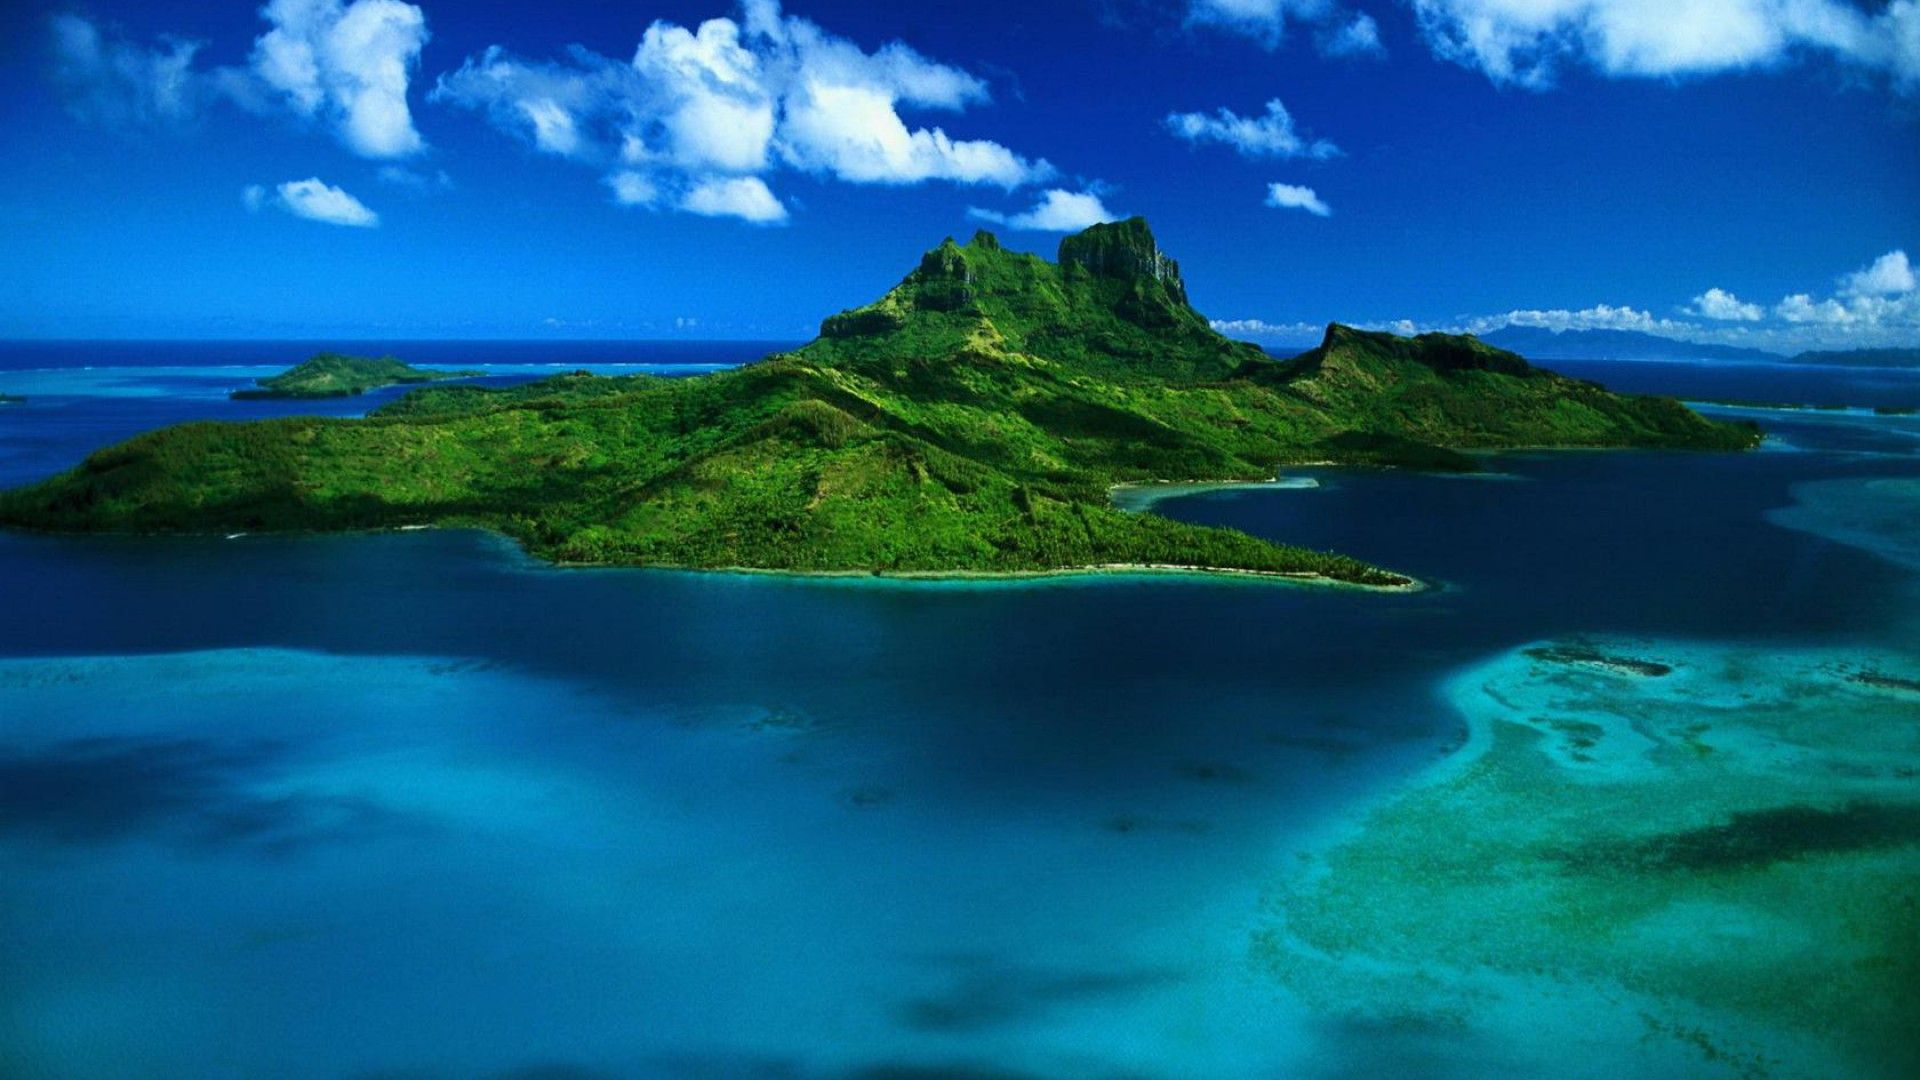 Tropical Island Pictures Wallpapers Group (83+)